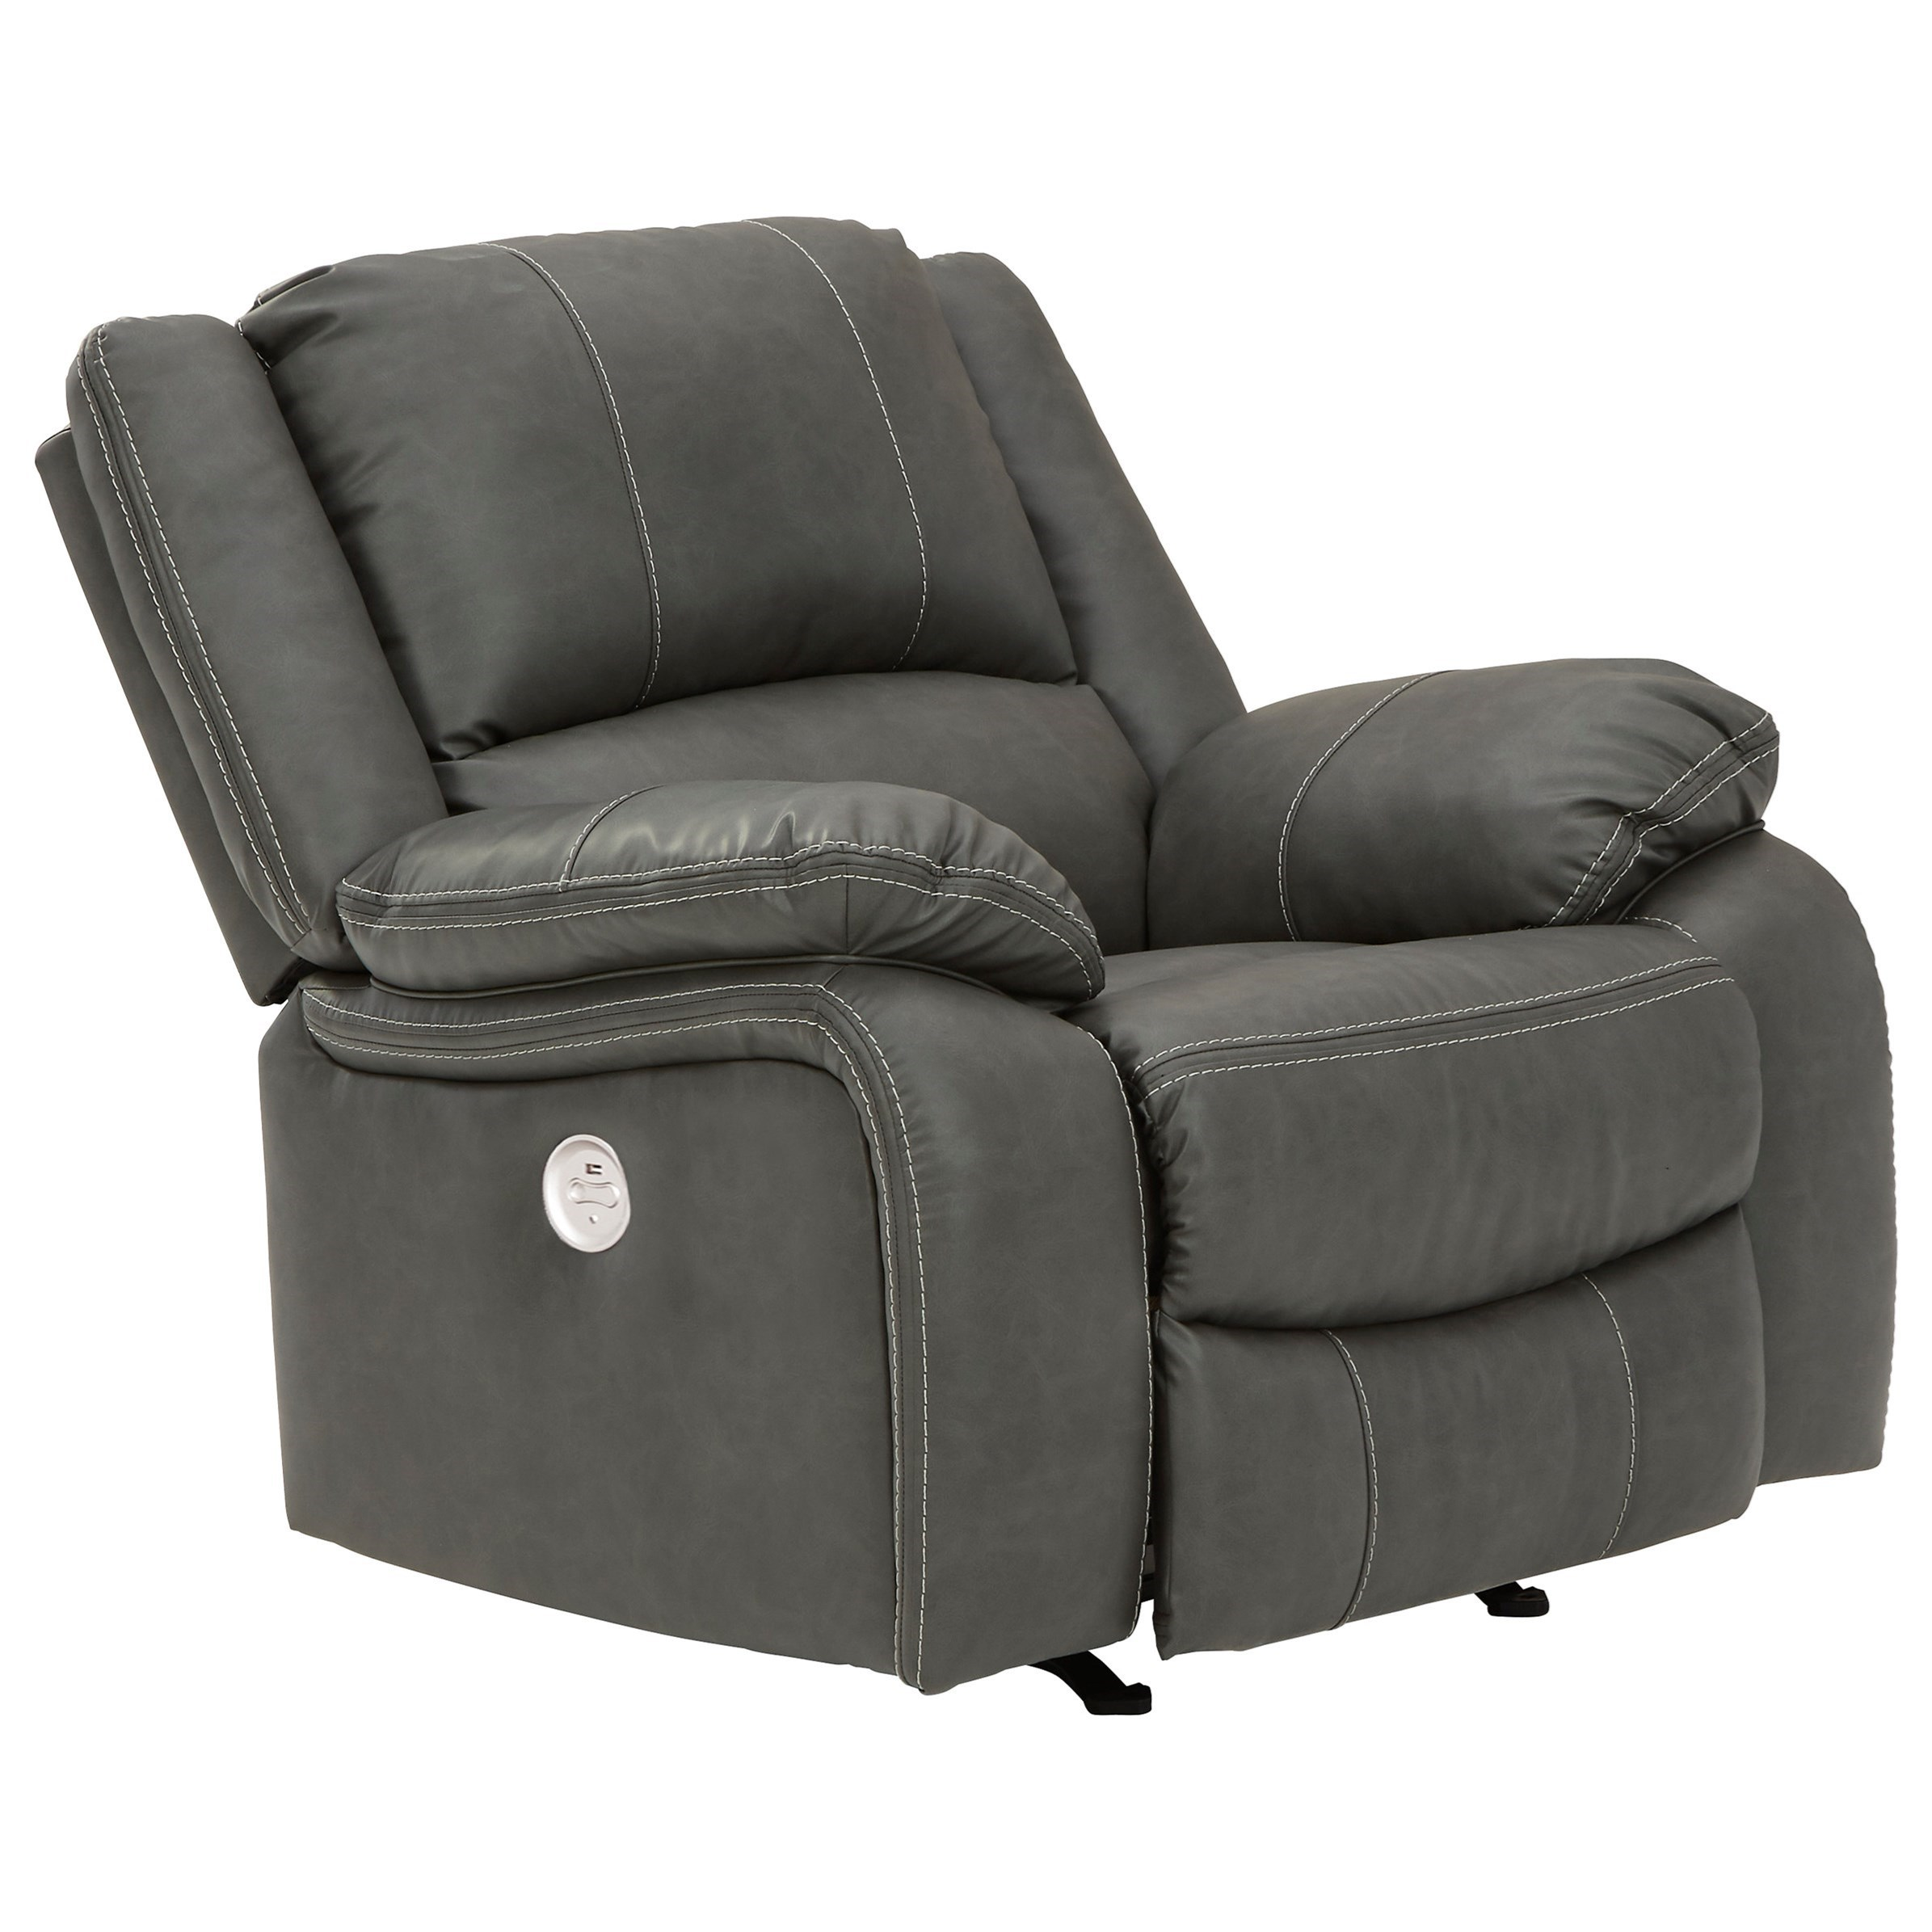 Calderwell Power Rocker Recliner by Signature Design by Ashley at Standard Furniture